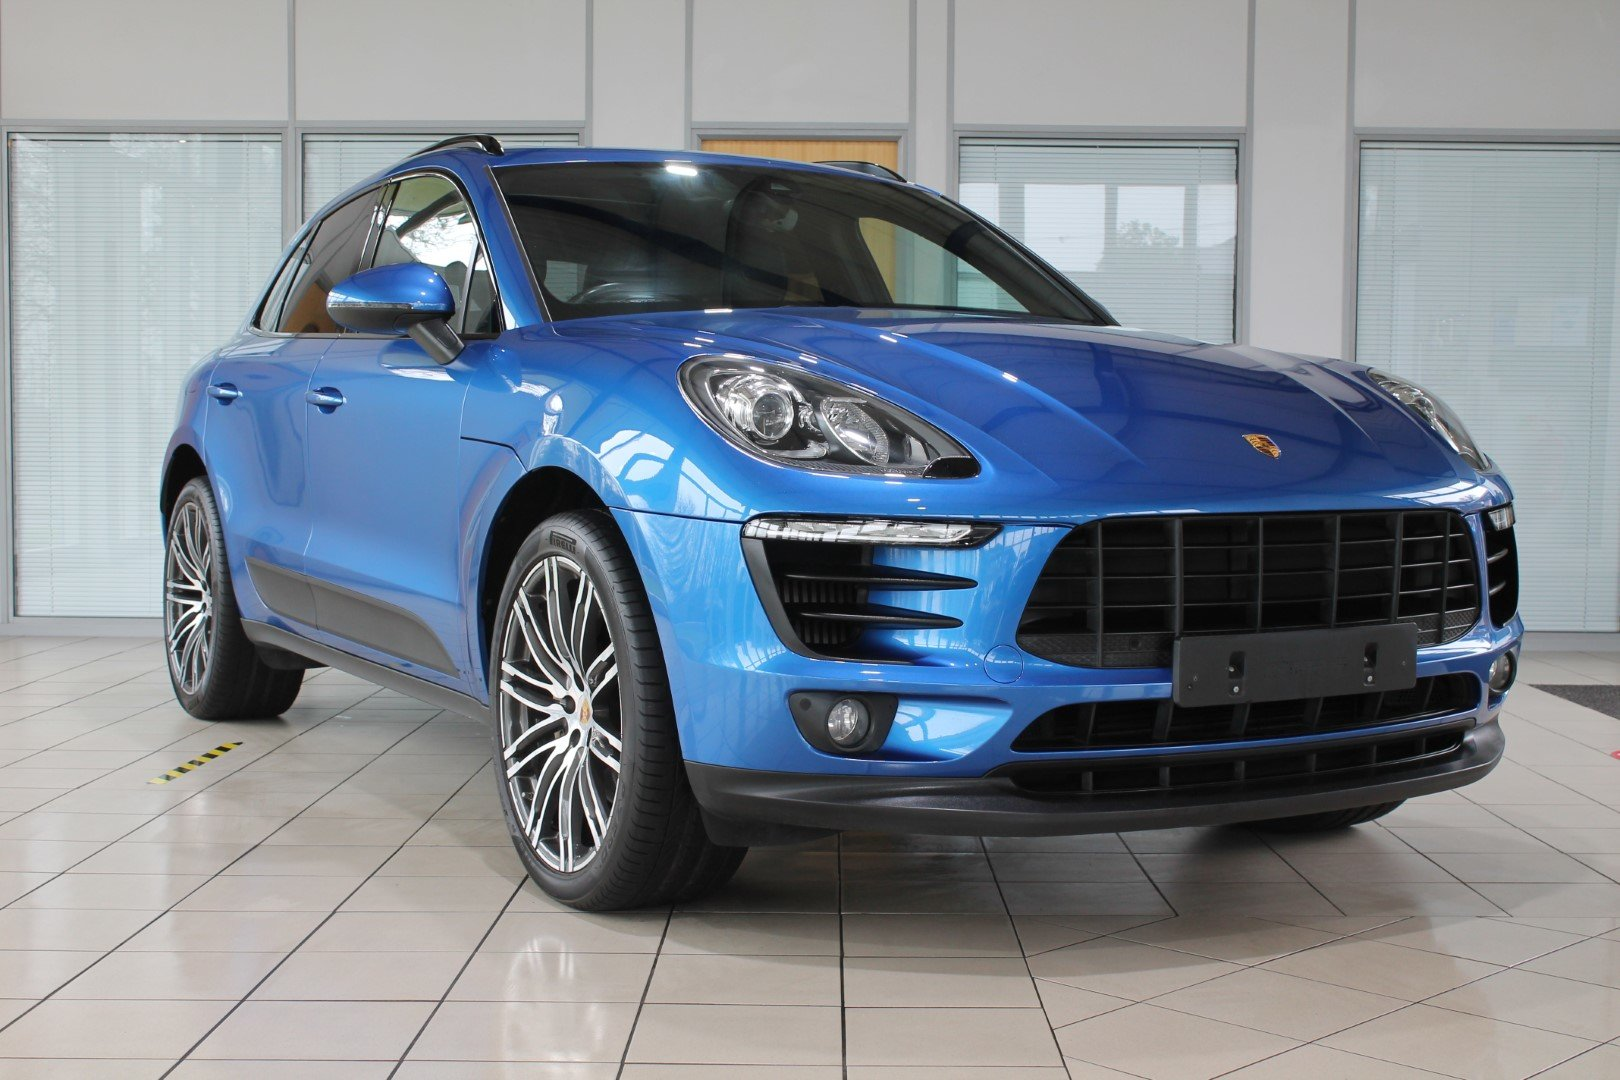 2016 Porsche Macan 3.0 S - NOW SOLD - MORE REQUIRED For Sale (picture 4 of 12)